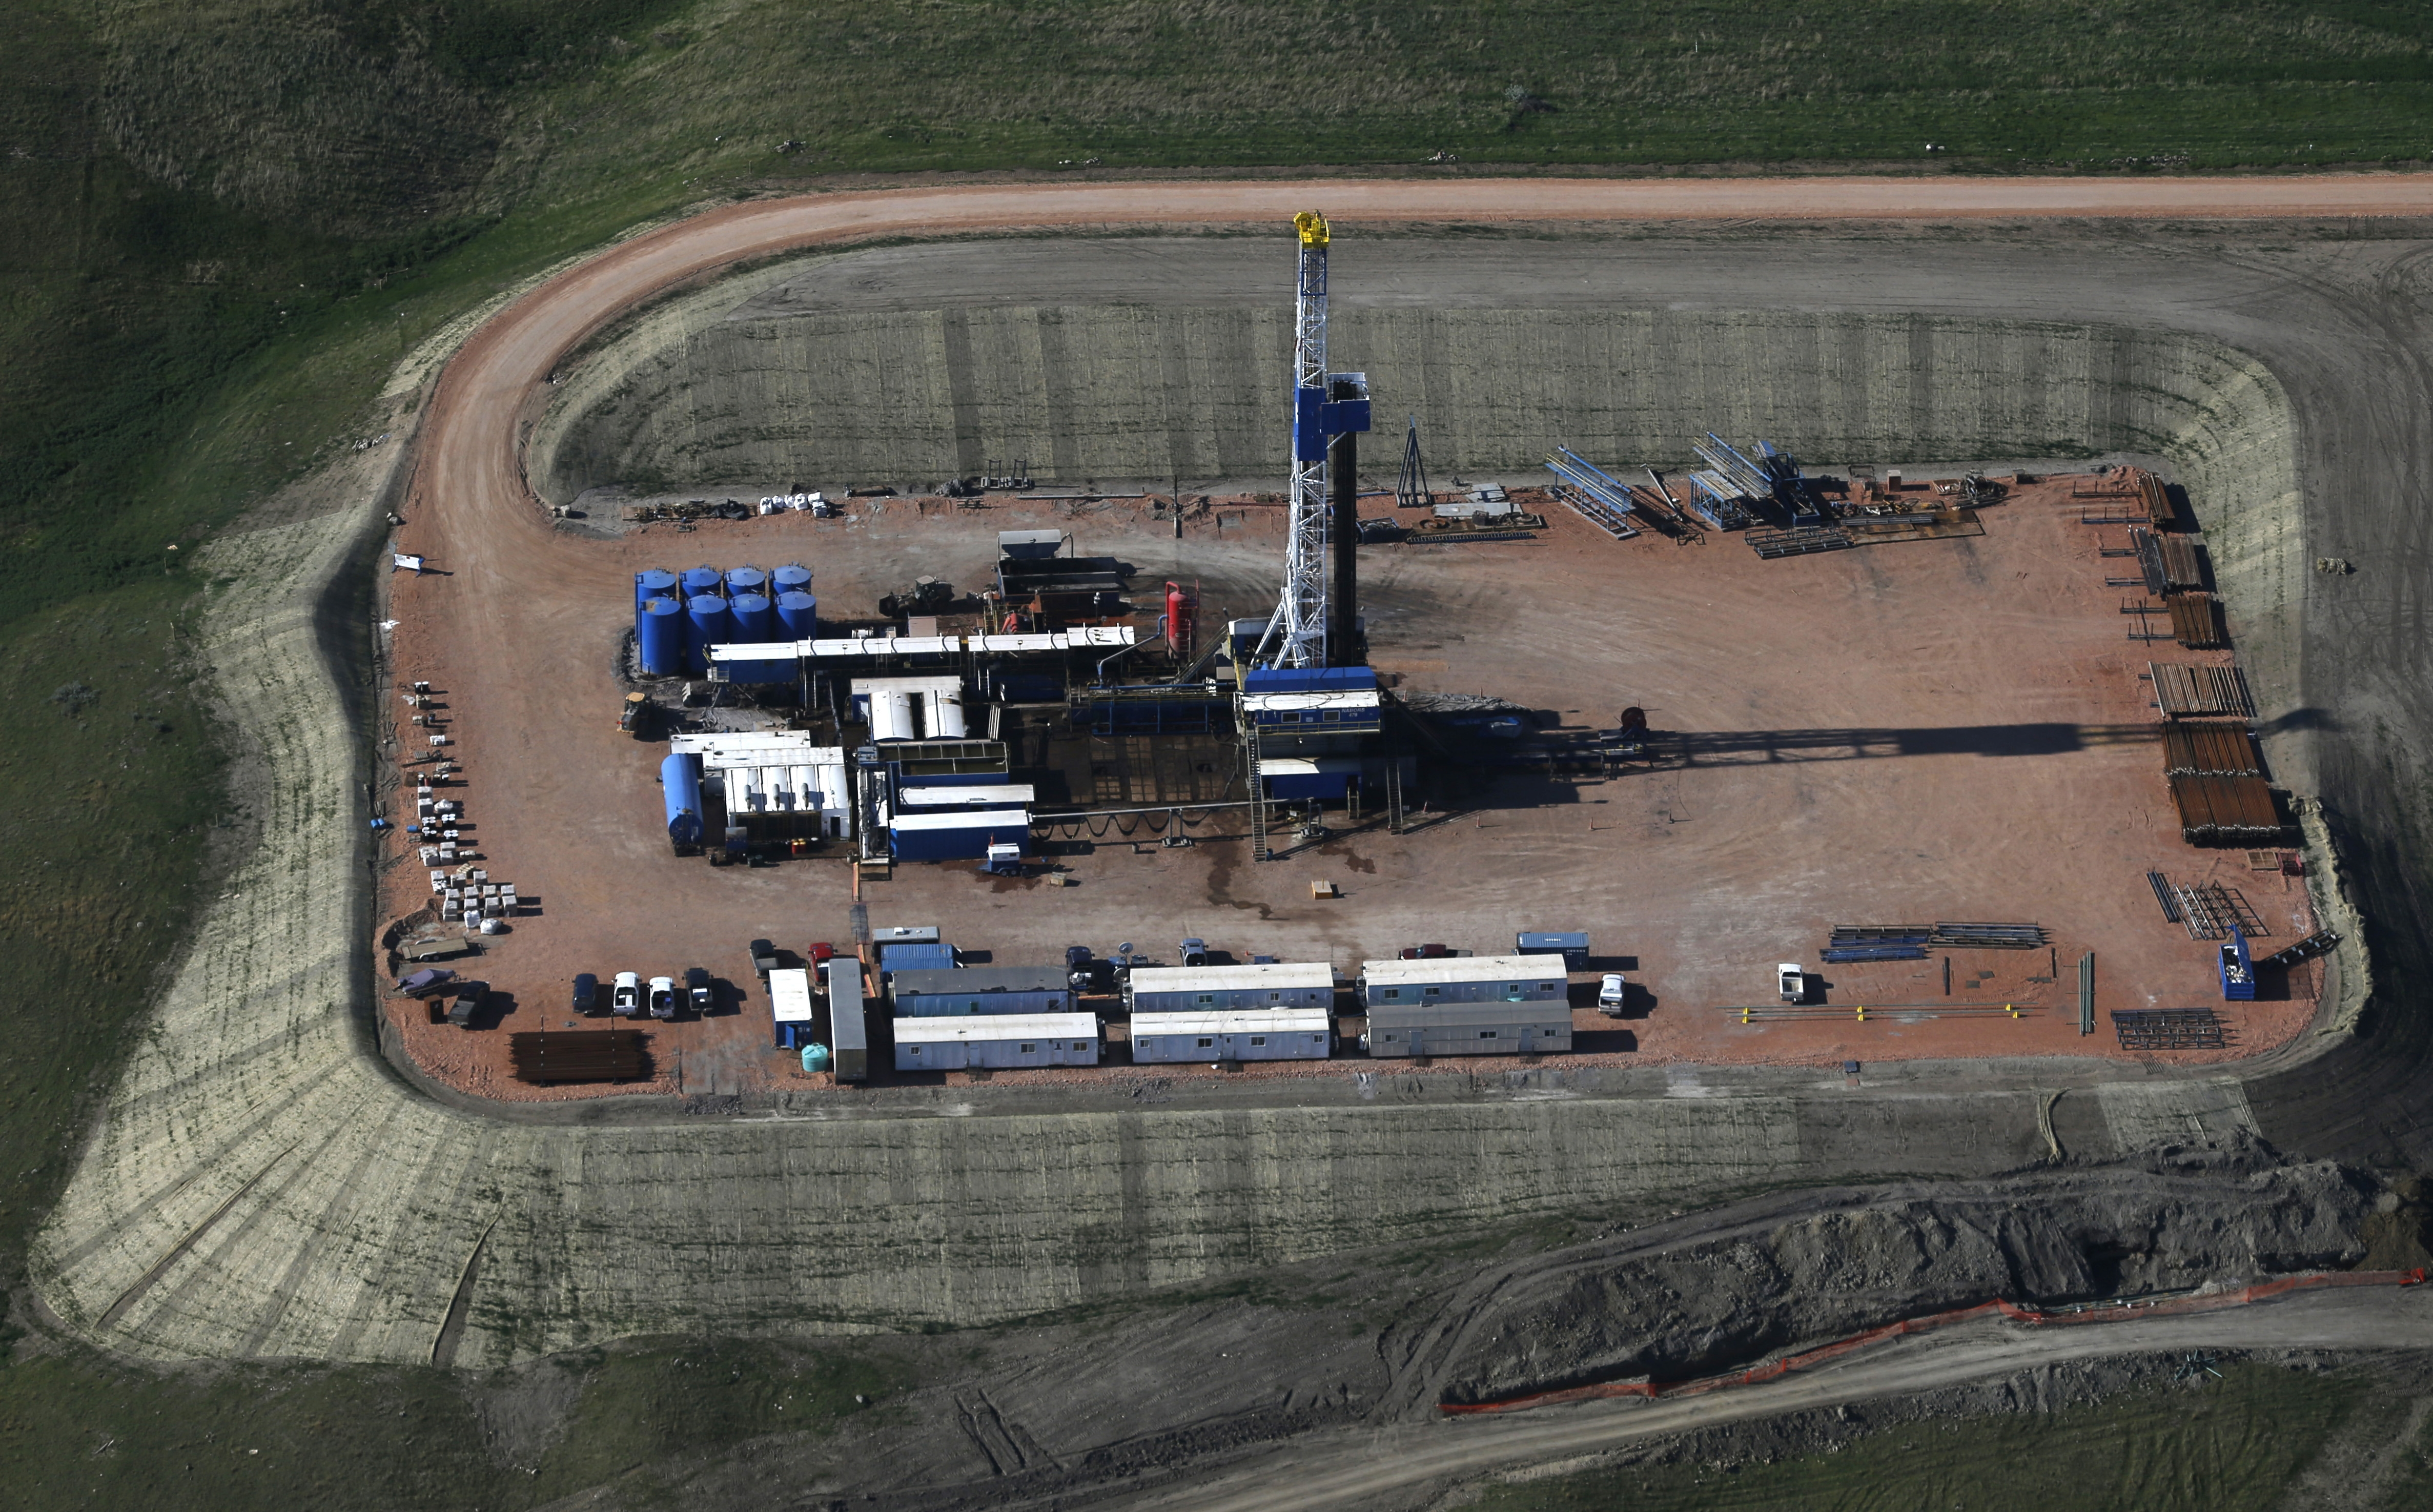 FILE - In this June 12, 2014, aerial photo, an oil well is drilled near Williston, N.D. A decision by OPEC not to cut oil production is hammering major energy companies in the U.S. and abroad. Chevron, ConocoPhillips and Exxon Mobil are down more than 4 percent. Britainís BP is down 6 percent. Natural gas producers are getting hit as well. Chesapeake Energy is down almost 12 percent. Benchmark U.S. crude prices plunged almost 7 percent $68.81 early Friday, Nov. 28. (AP Photo/Charles Rex Arbogast, File)